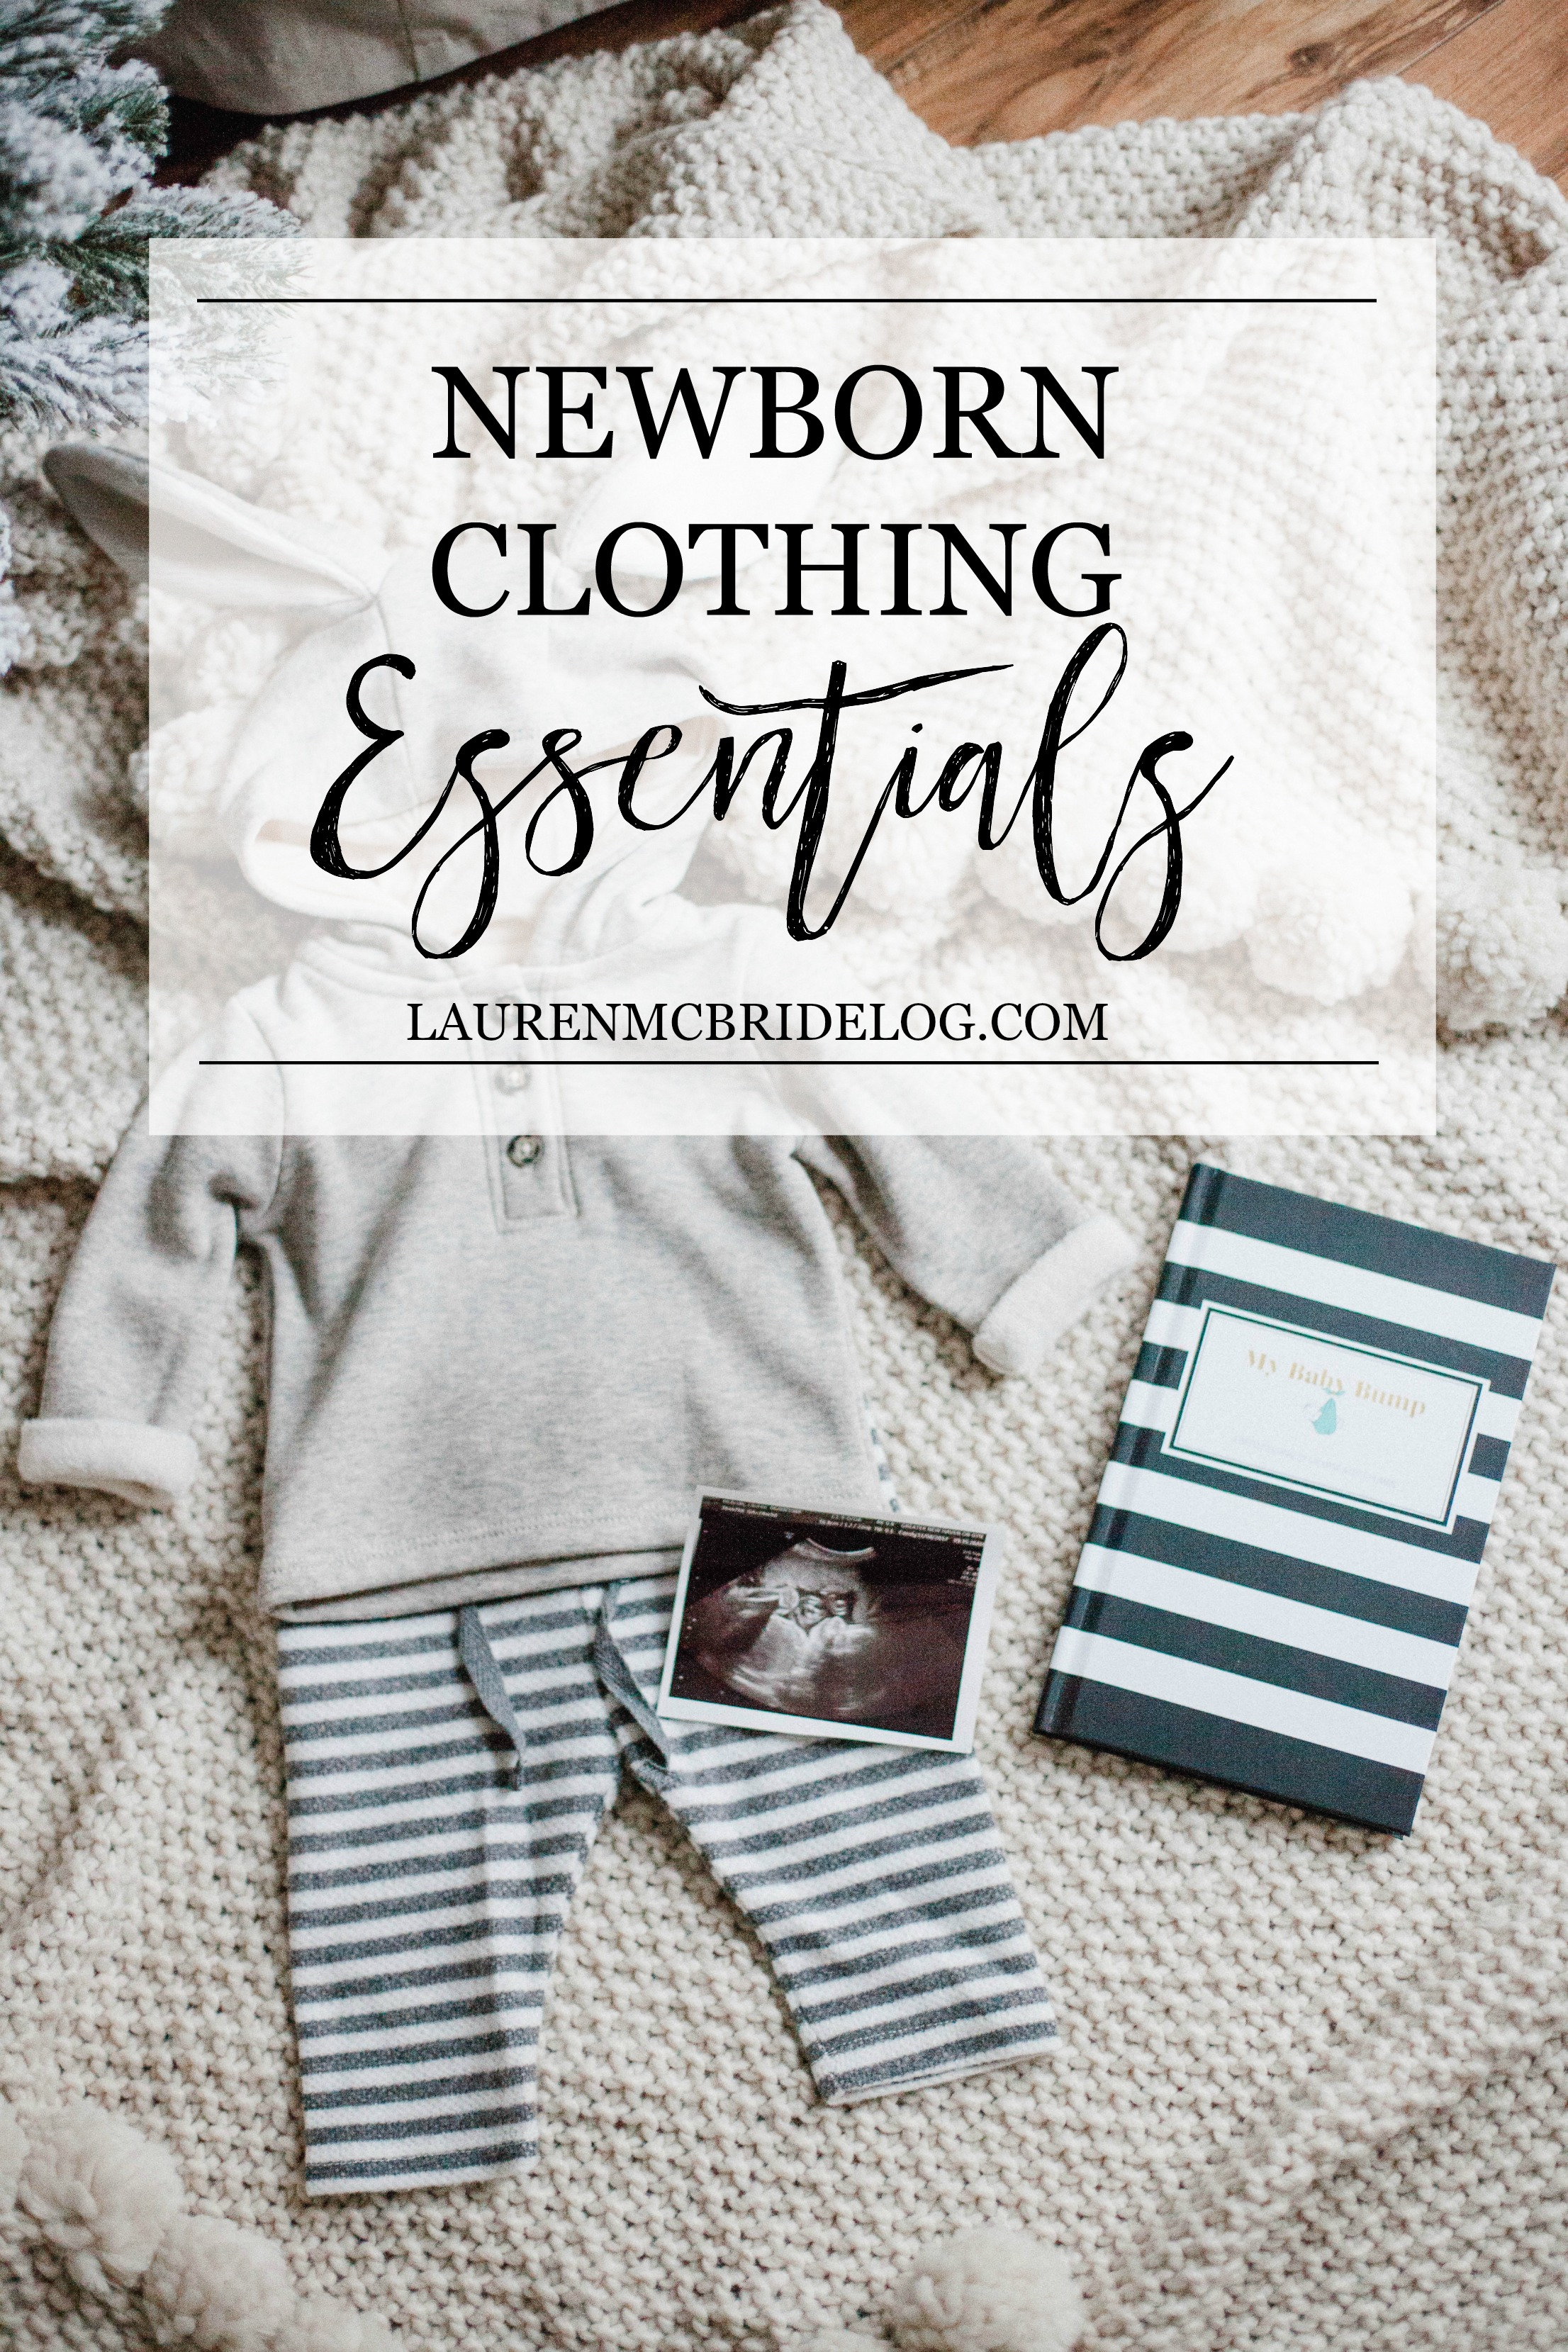 Life and style blogger Lauren McBride shares her Newborn Clothing Essentials for the winter season!